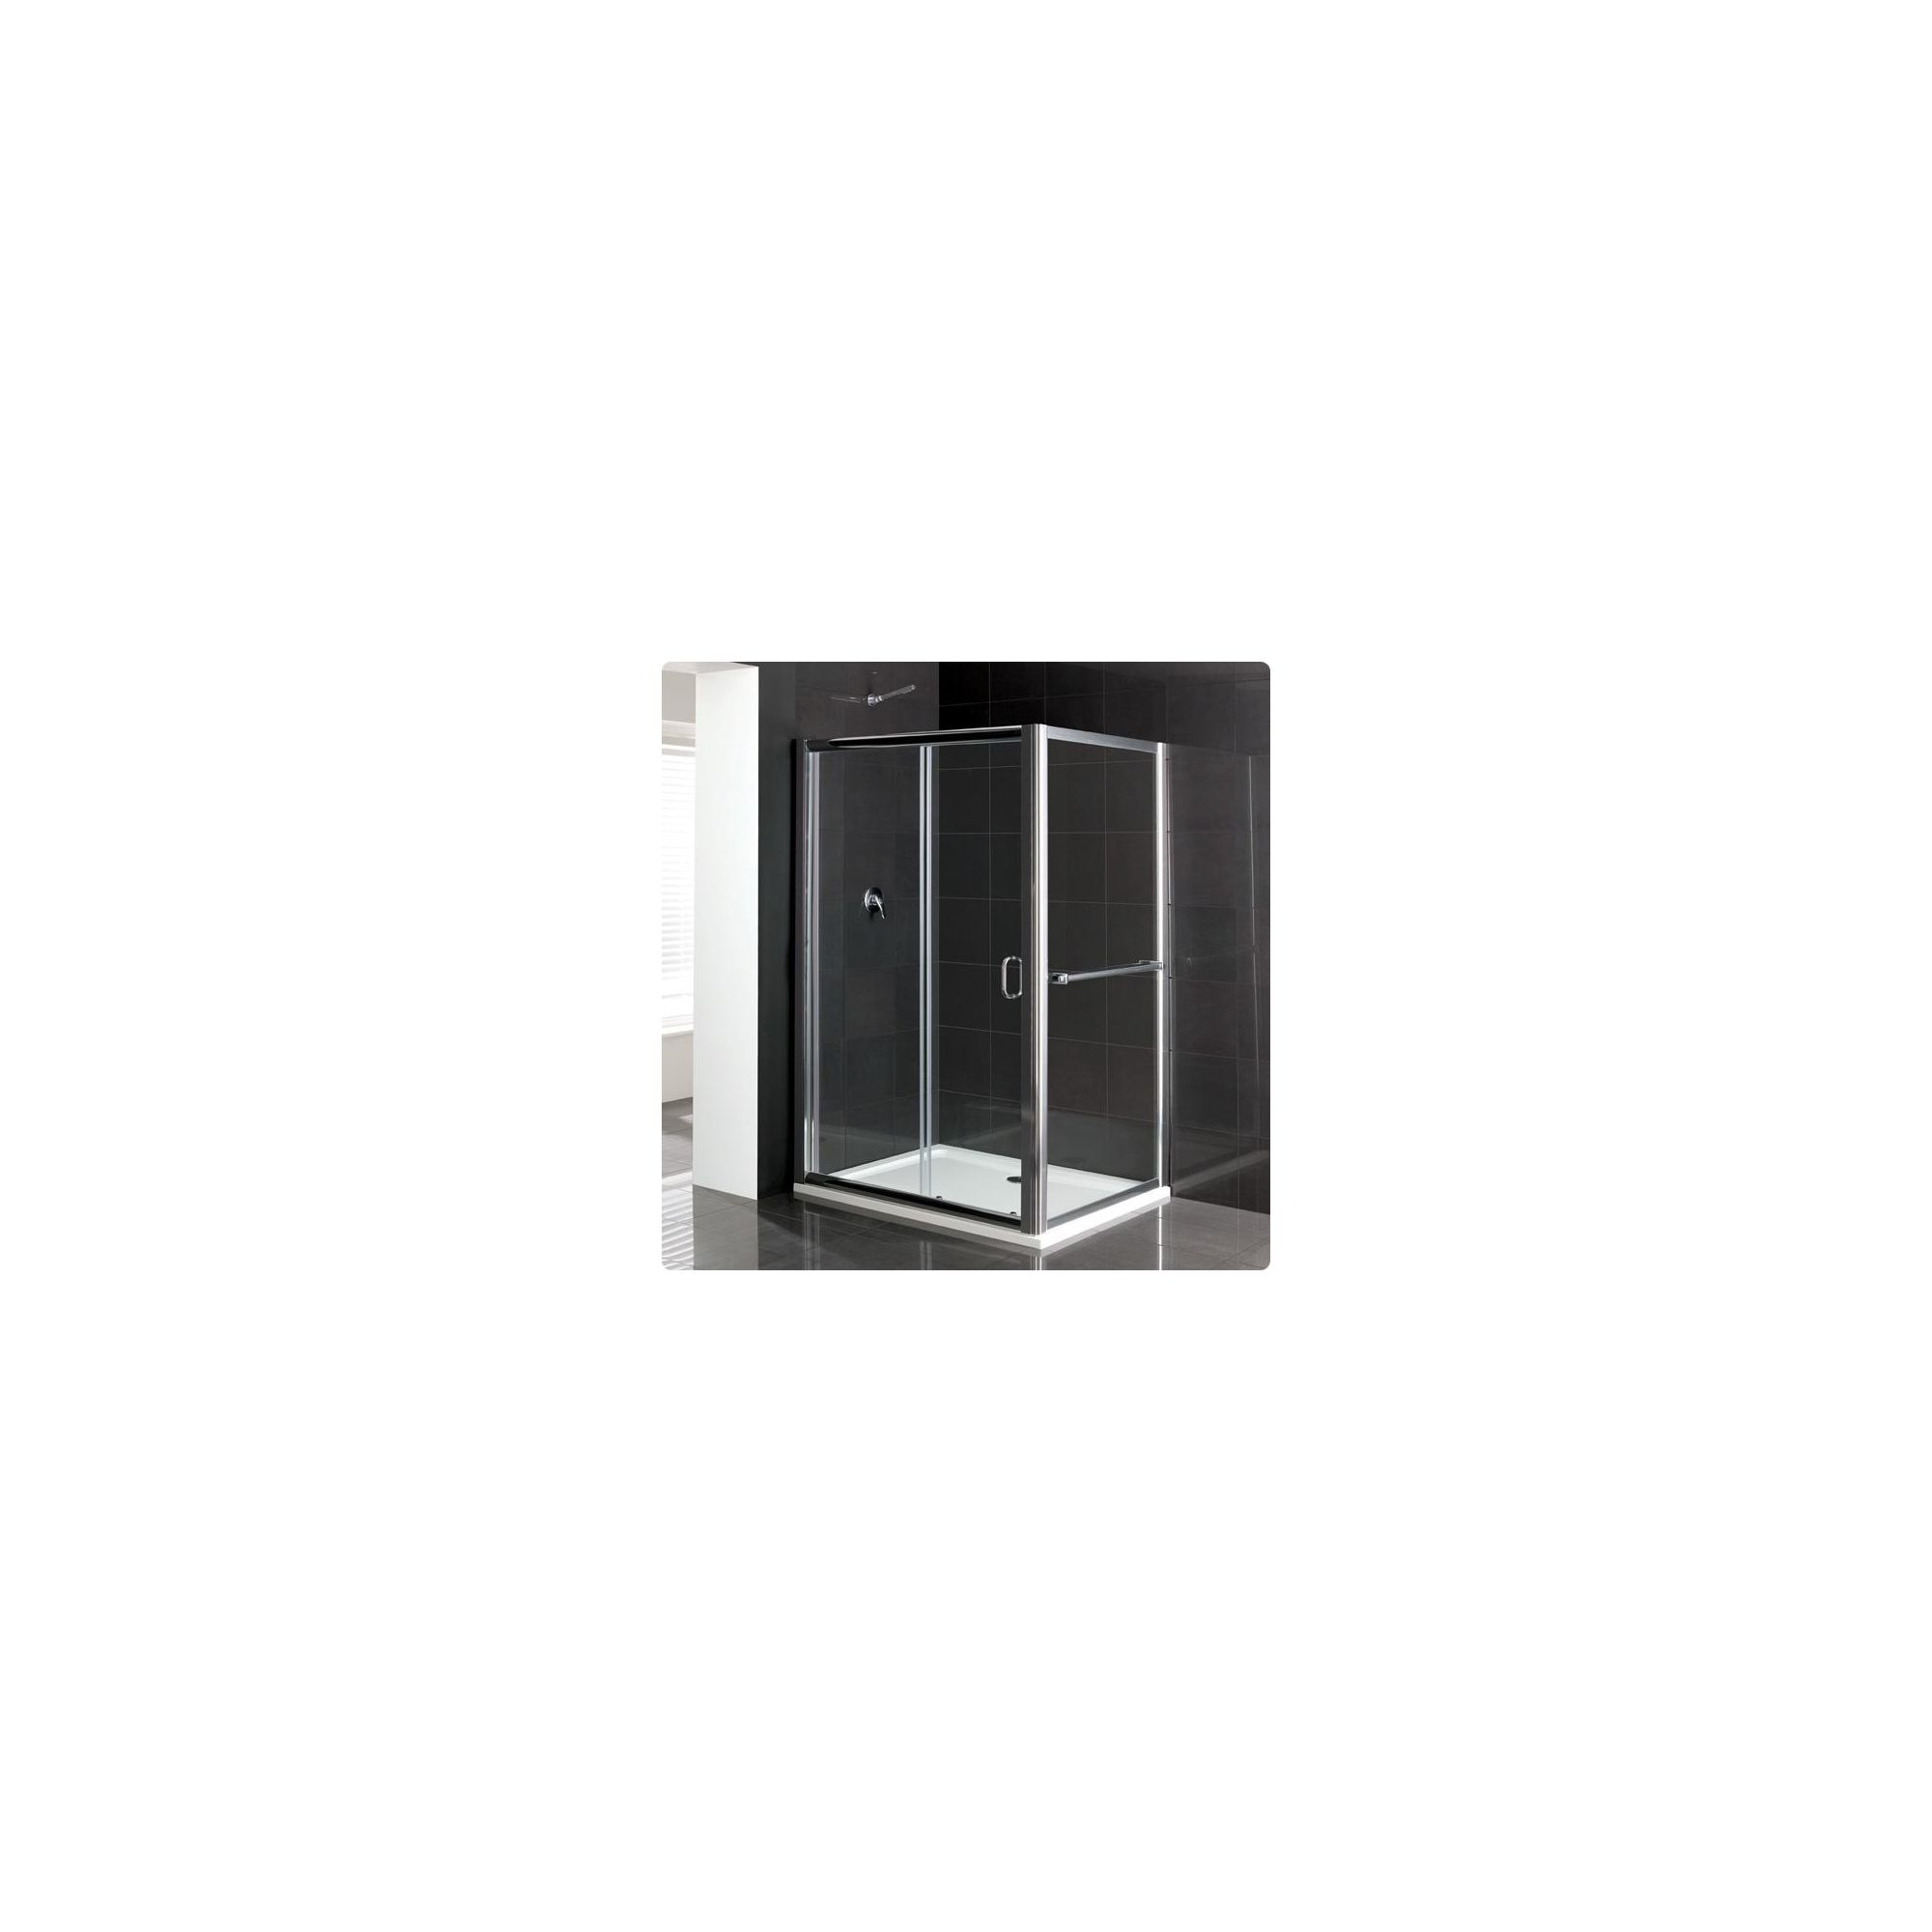 Duchy Elite Silver Sliding Door Shower Enclosure with Towel Rail, 1200mm x 760mm, Standard Tray, 6mm Glass at Tescos Direct